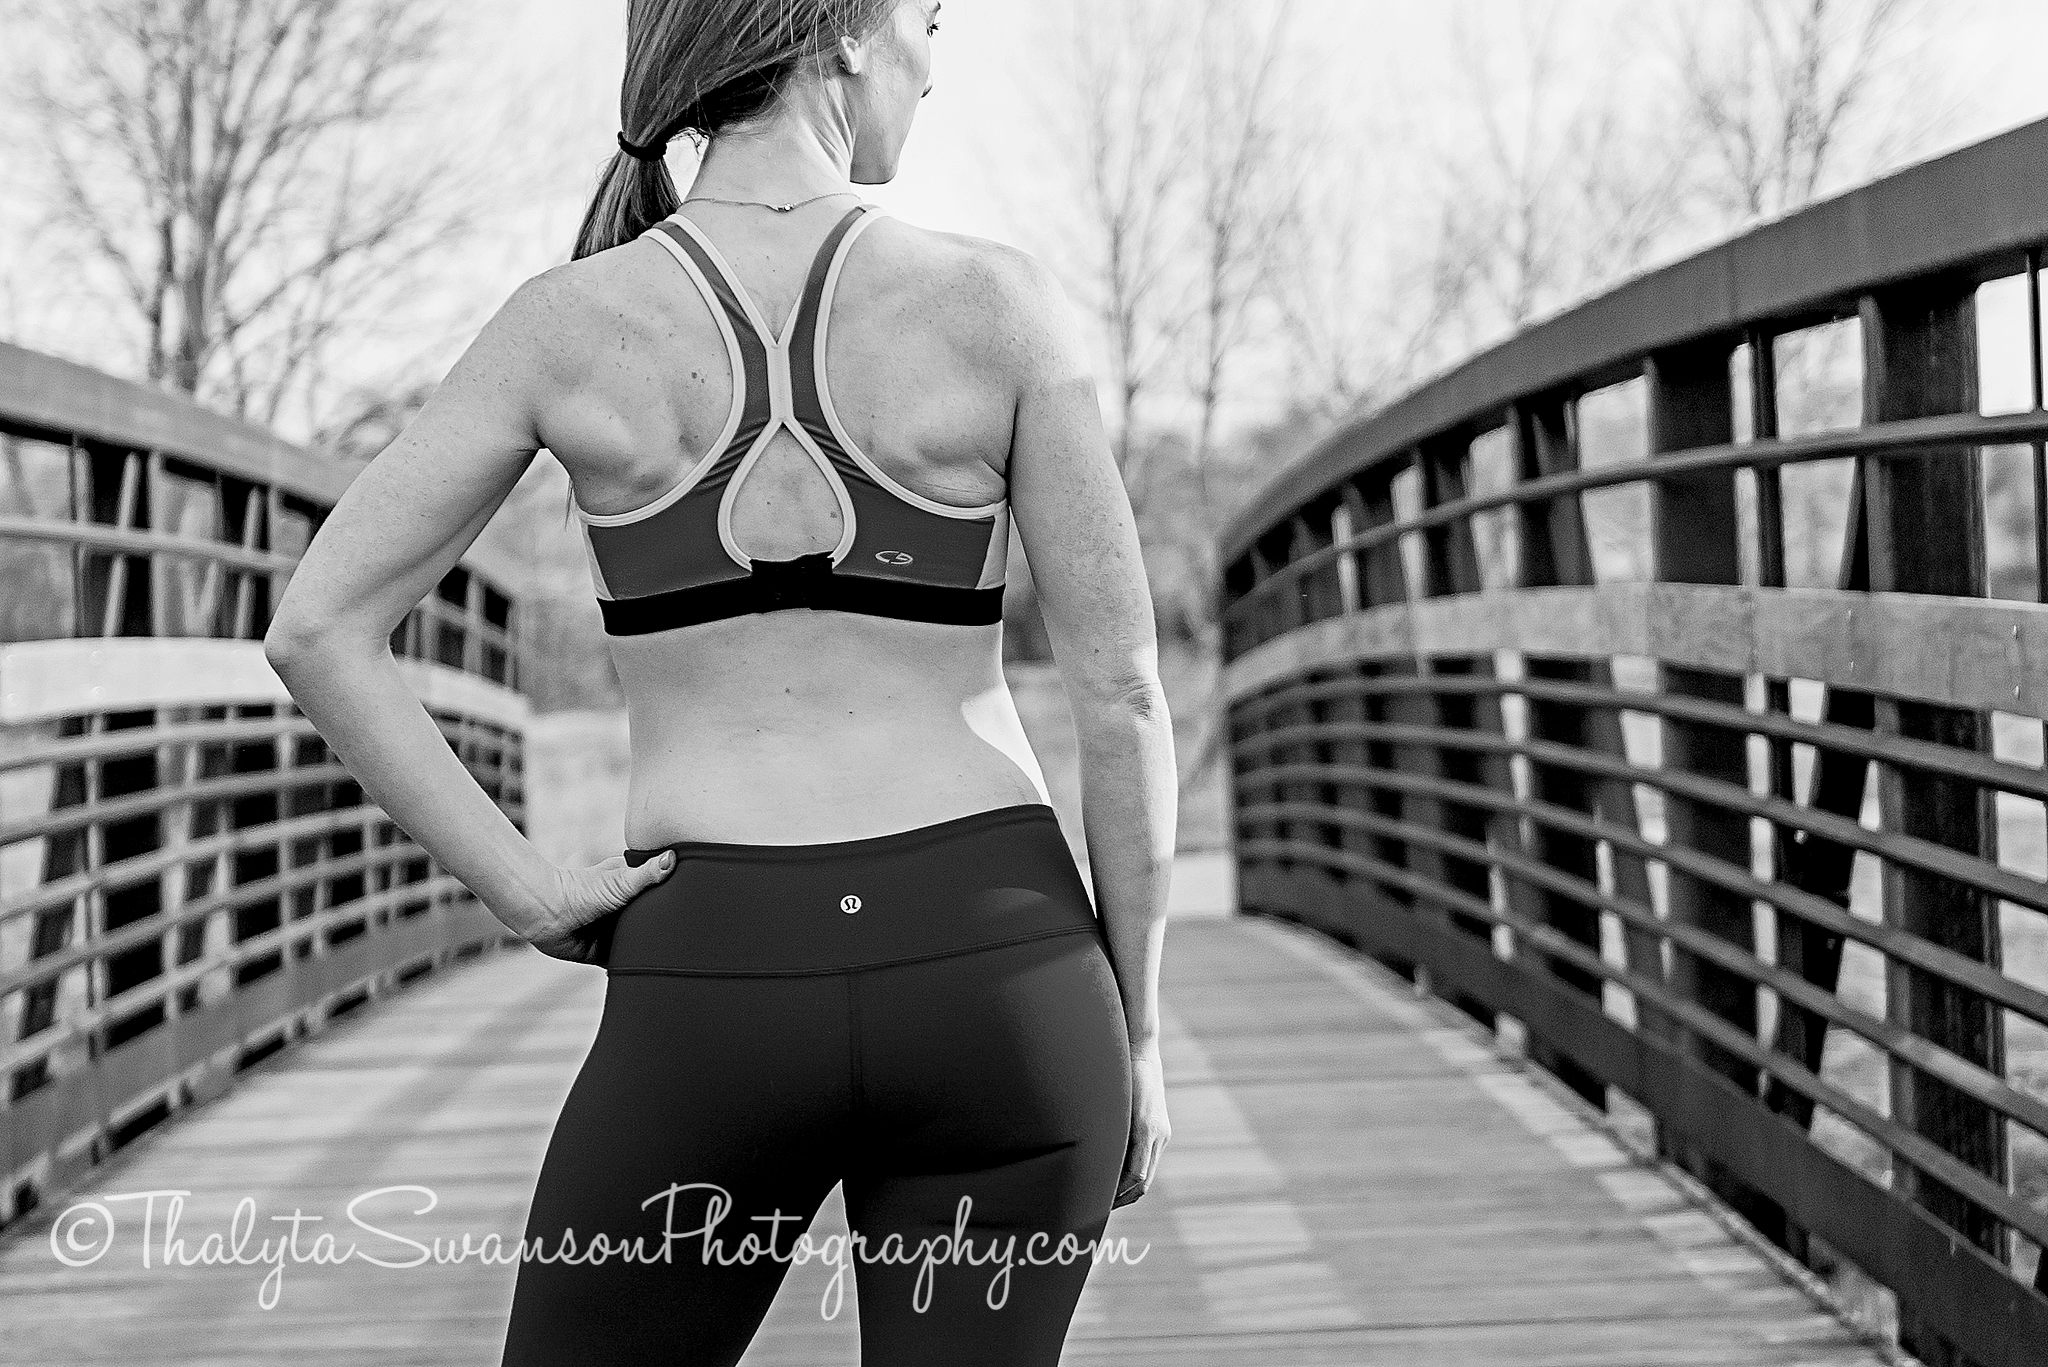 Thalyta Swanson Photography - Fitness Photos (11)